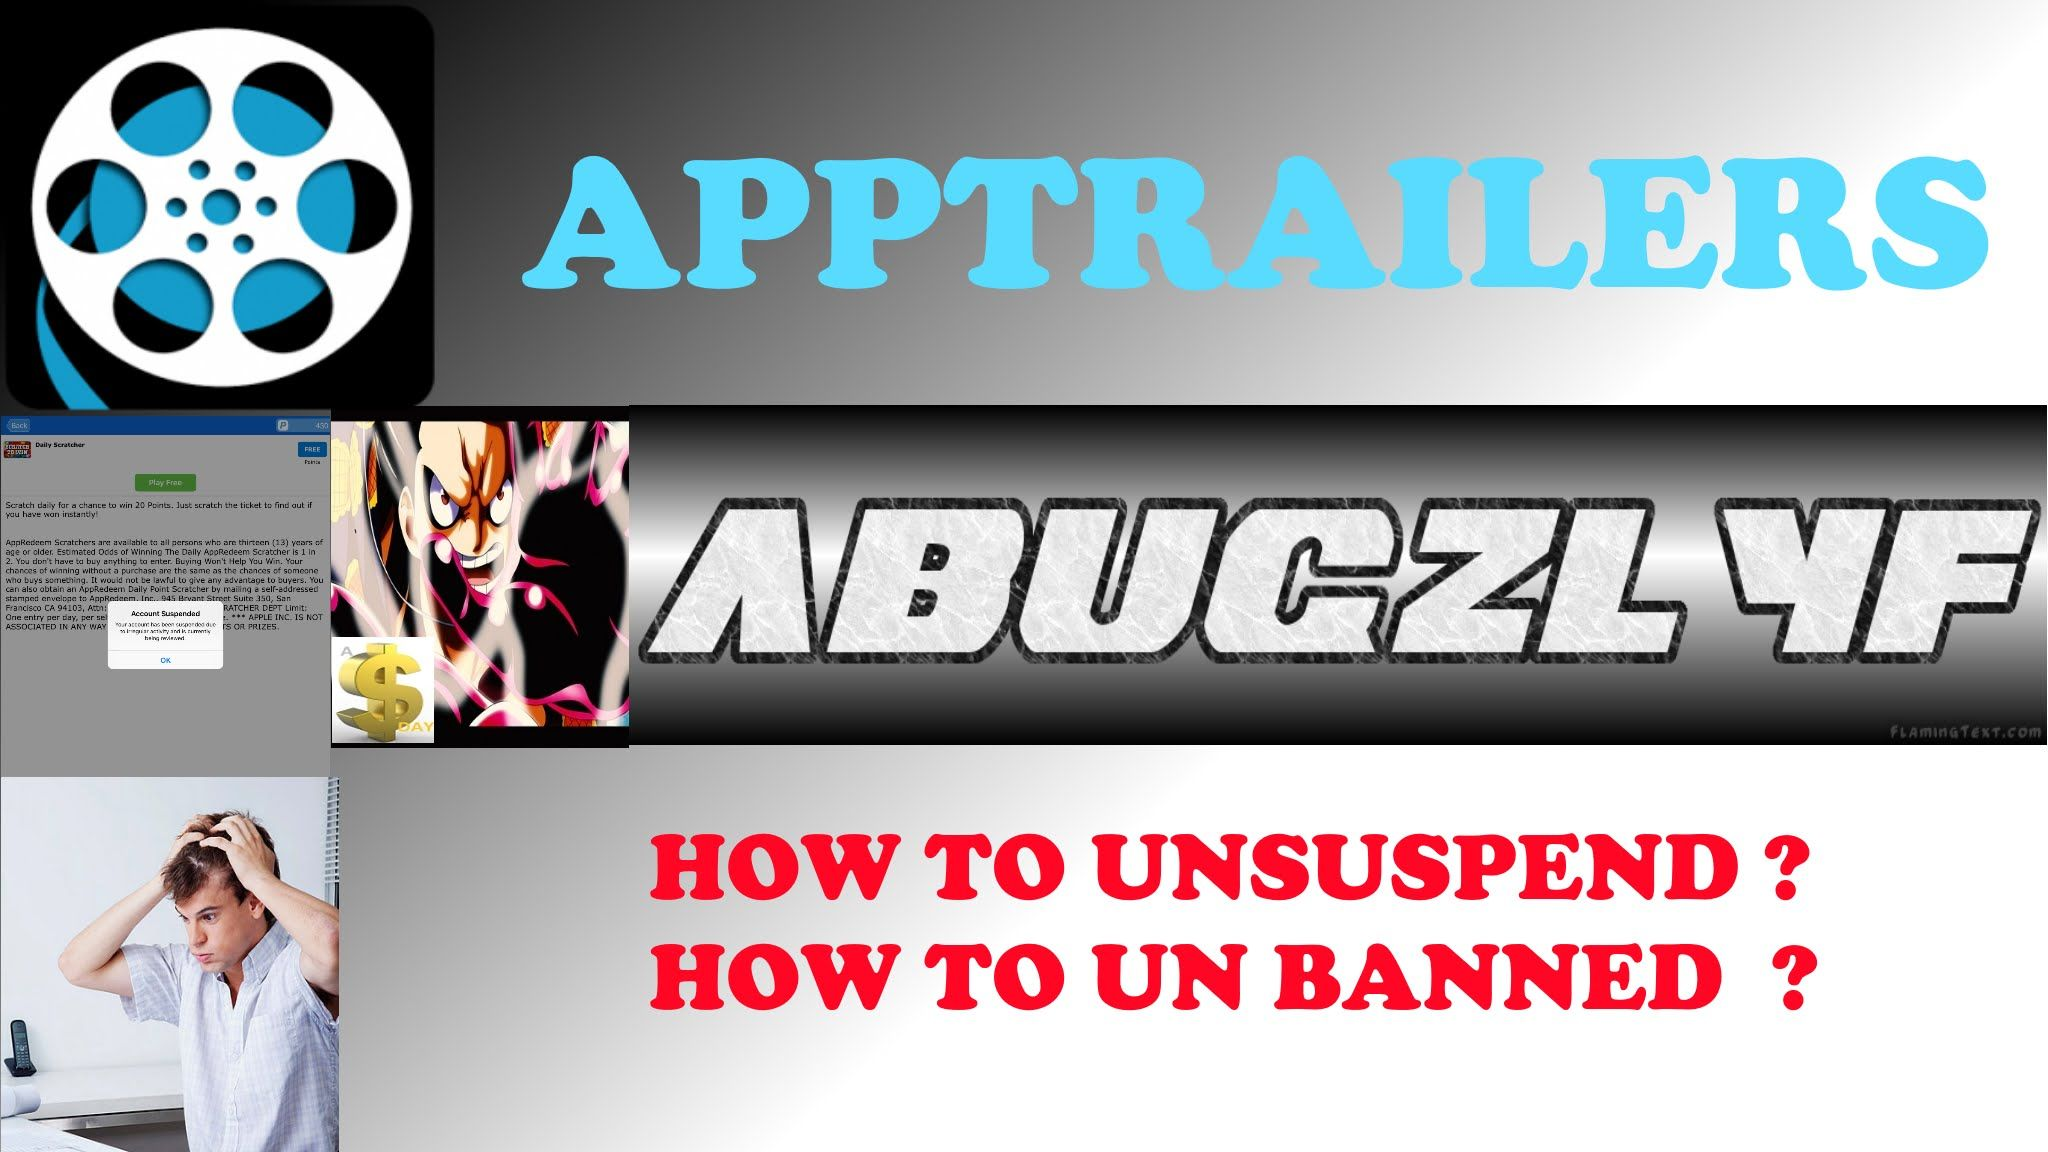 This is a tutorial on how to unbanned or unsuspend